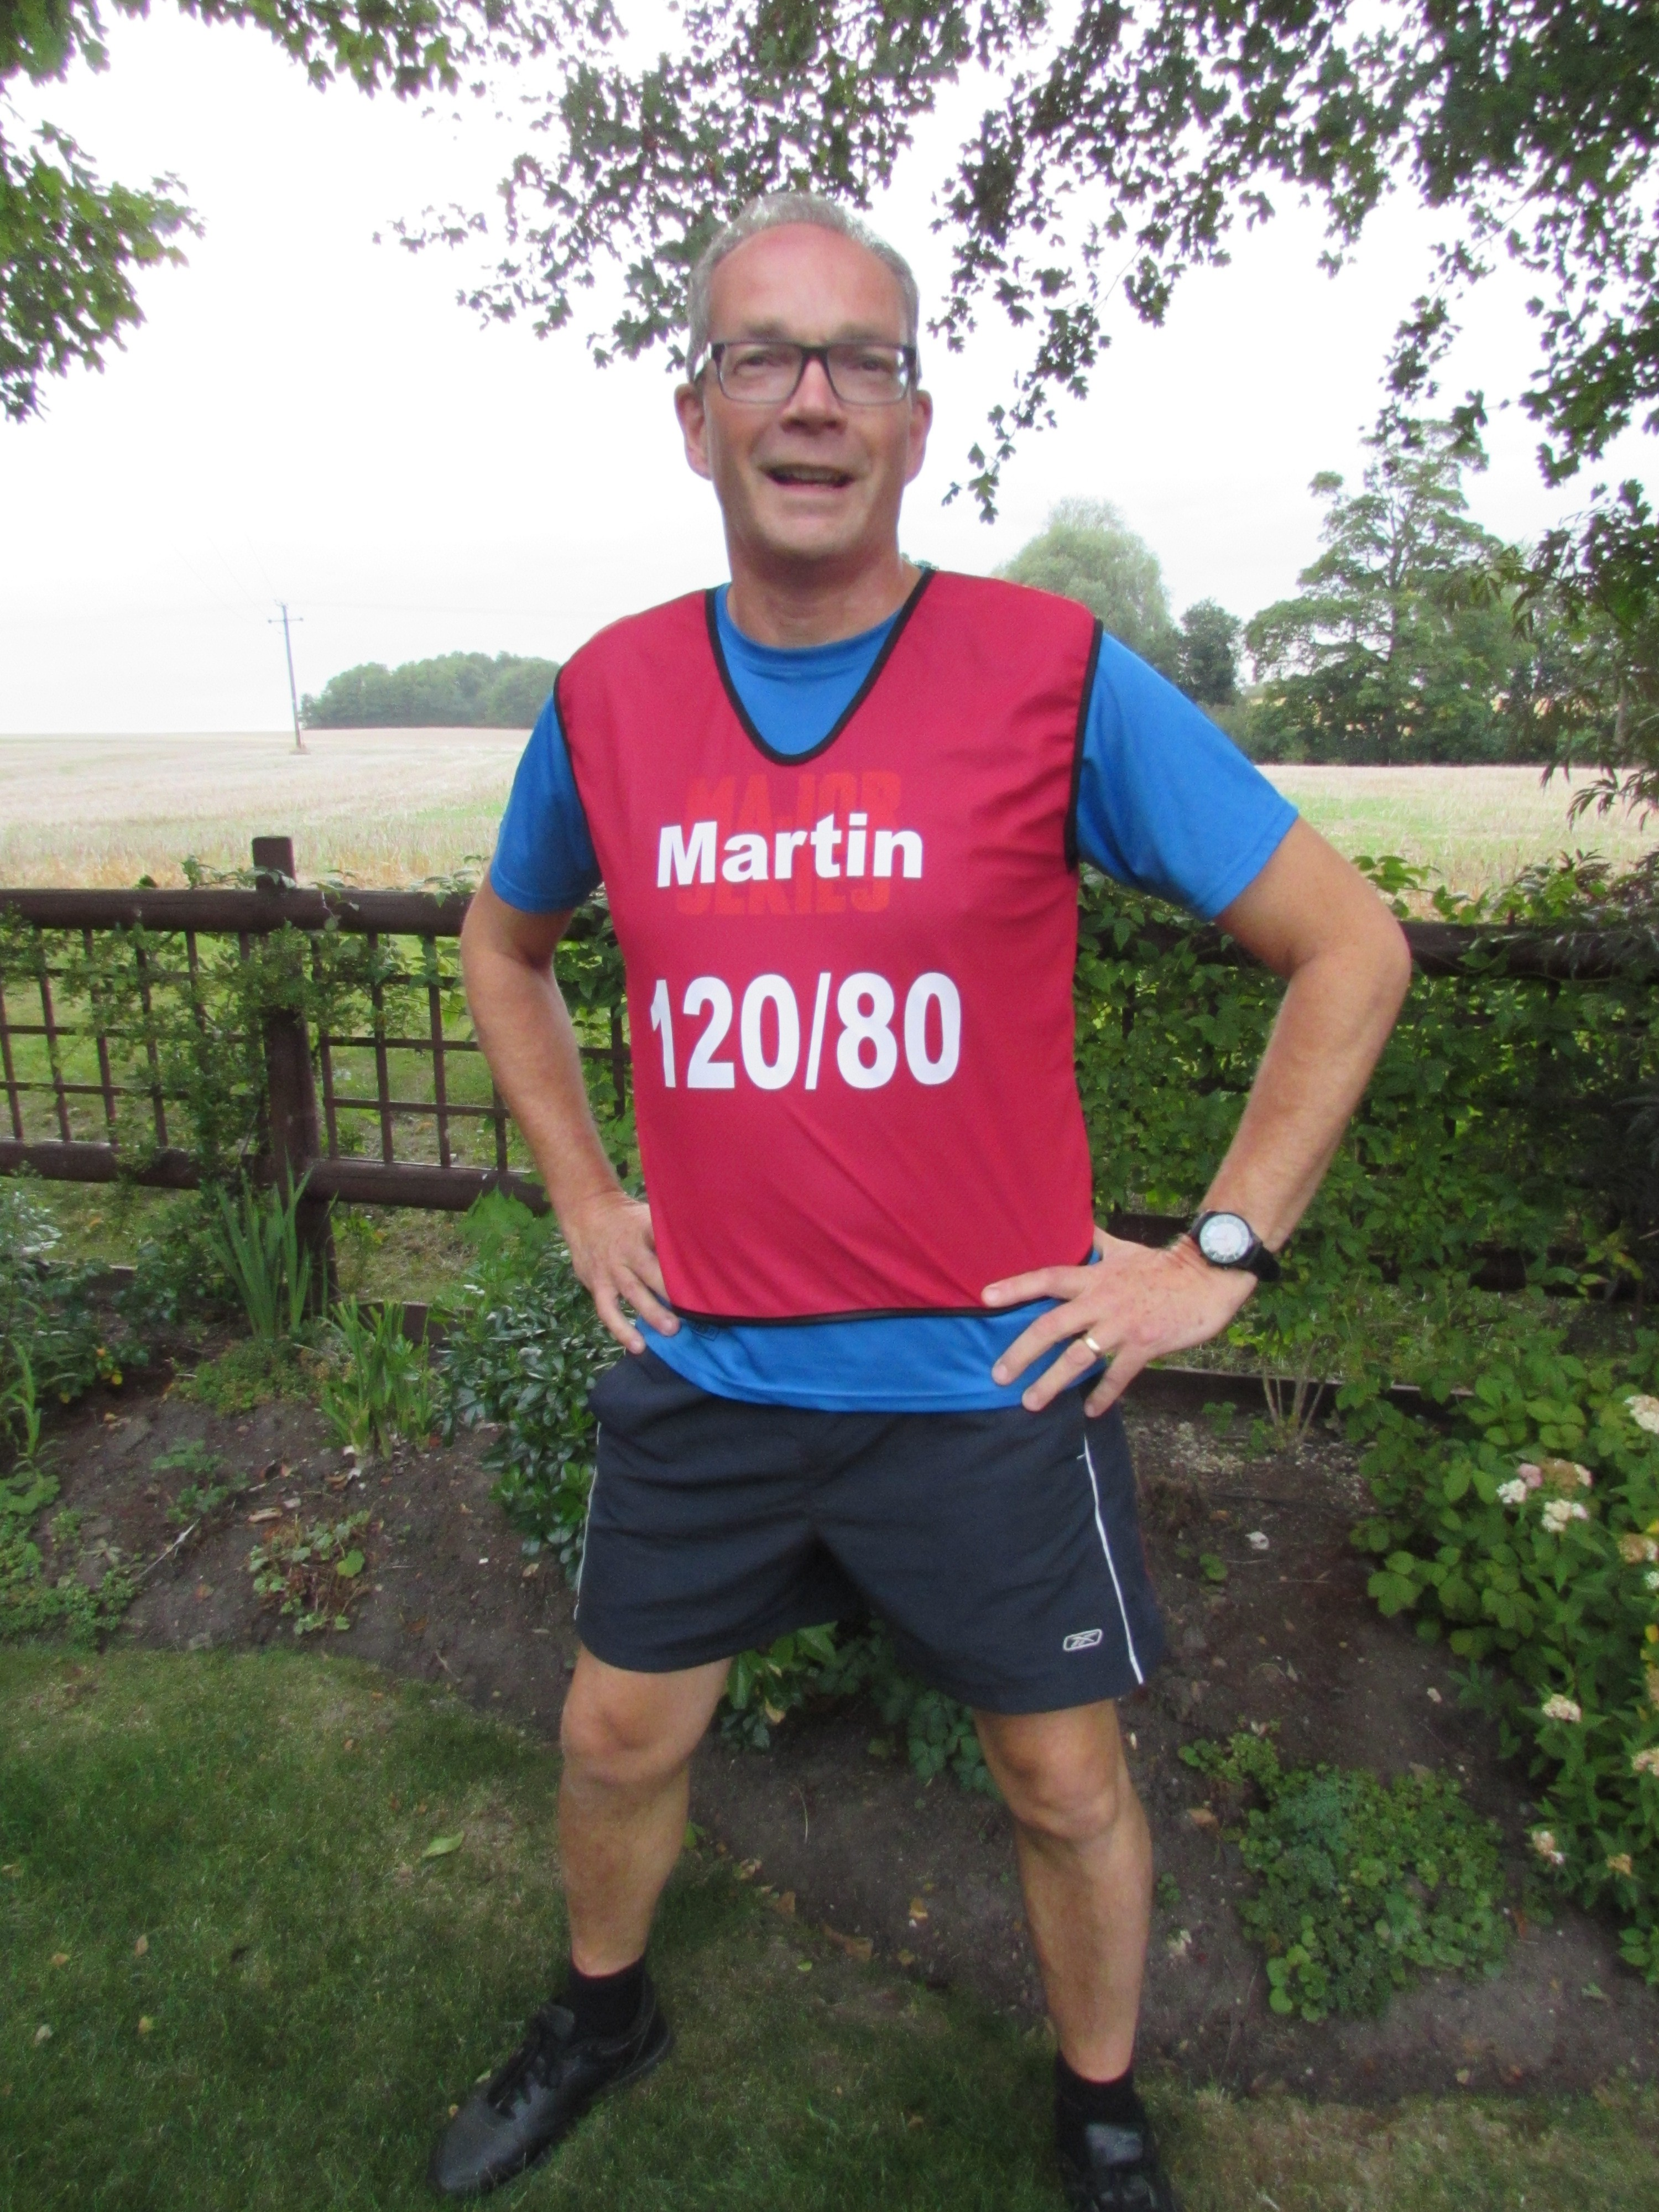 Training with BMF and a low fat diet helped Martin's blood pressure drop from 191/119 to 120/80